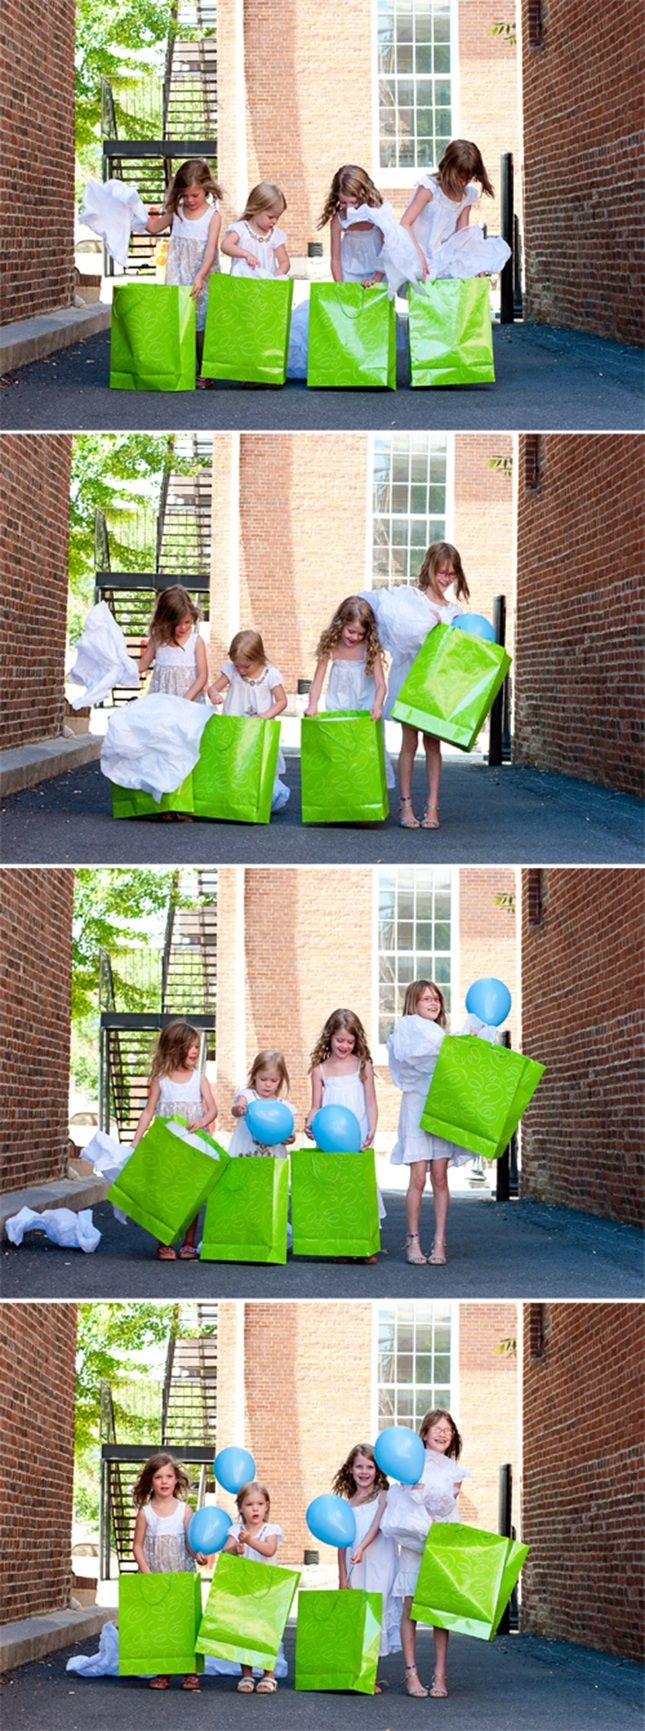 Find a fun way for your kids to announce your pregnancy.